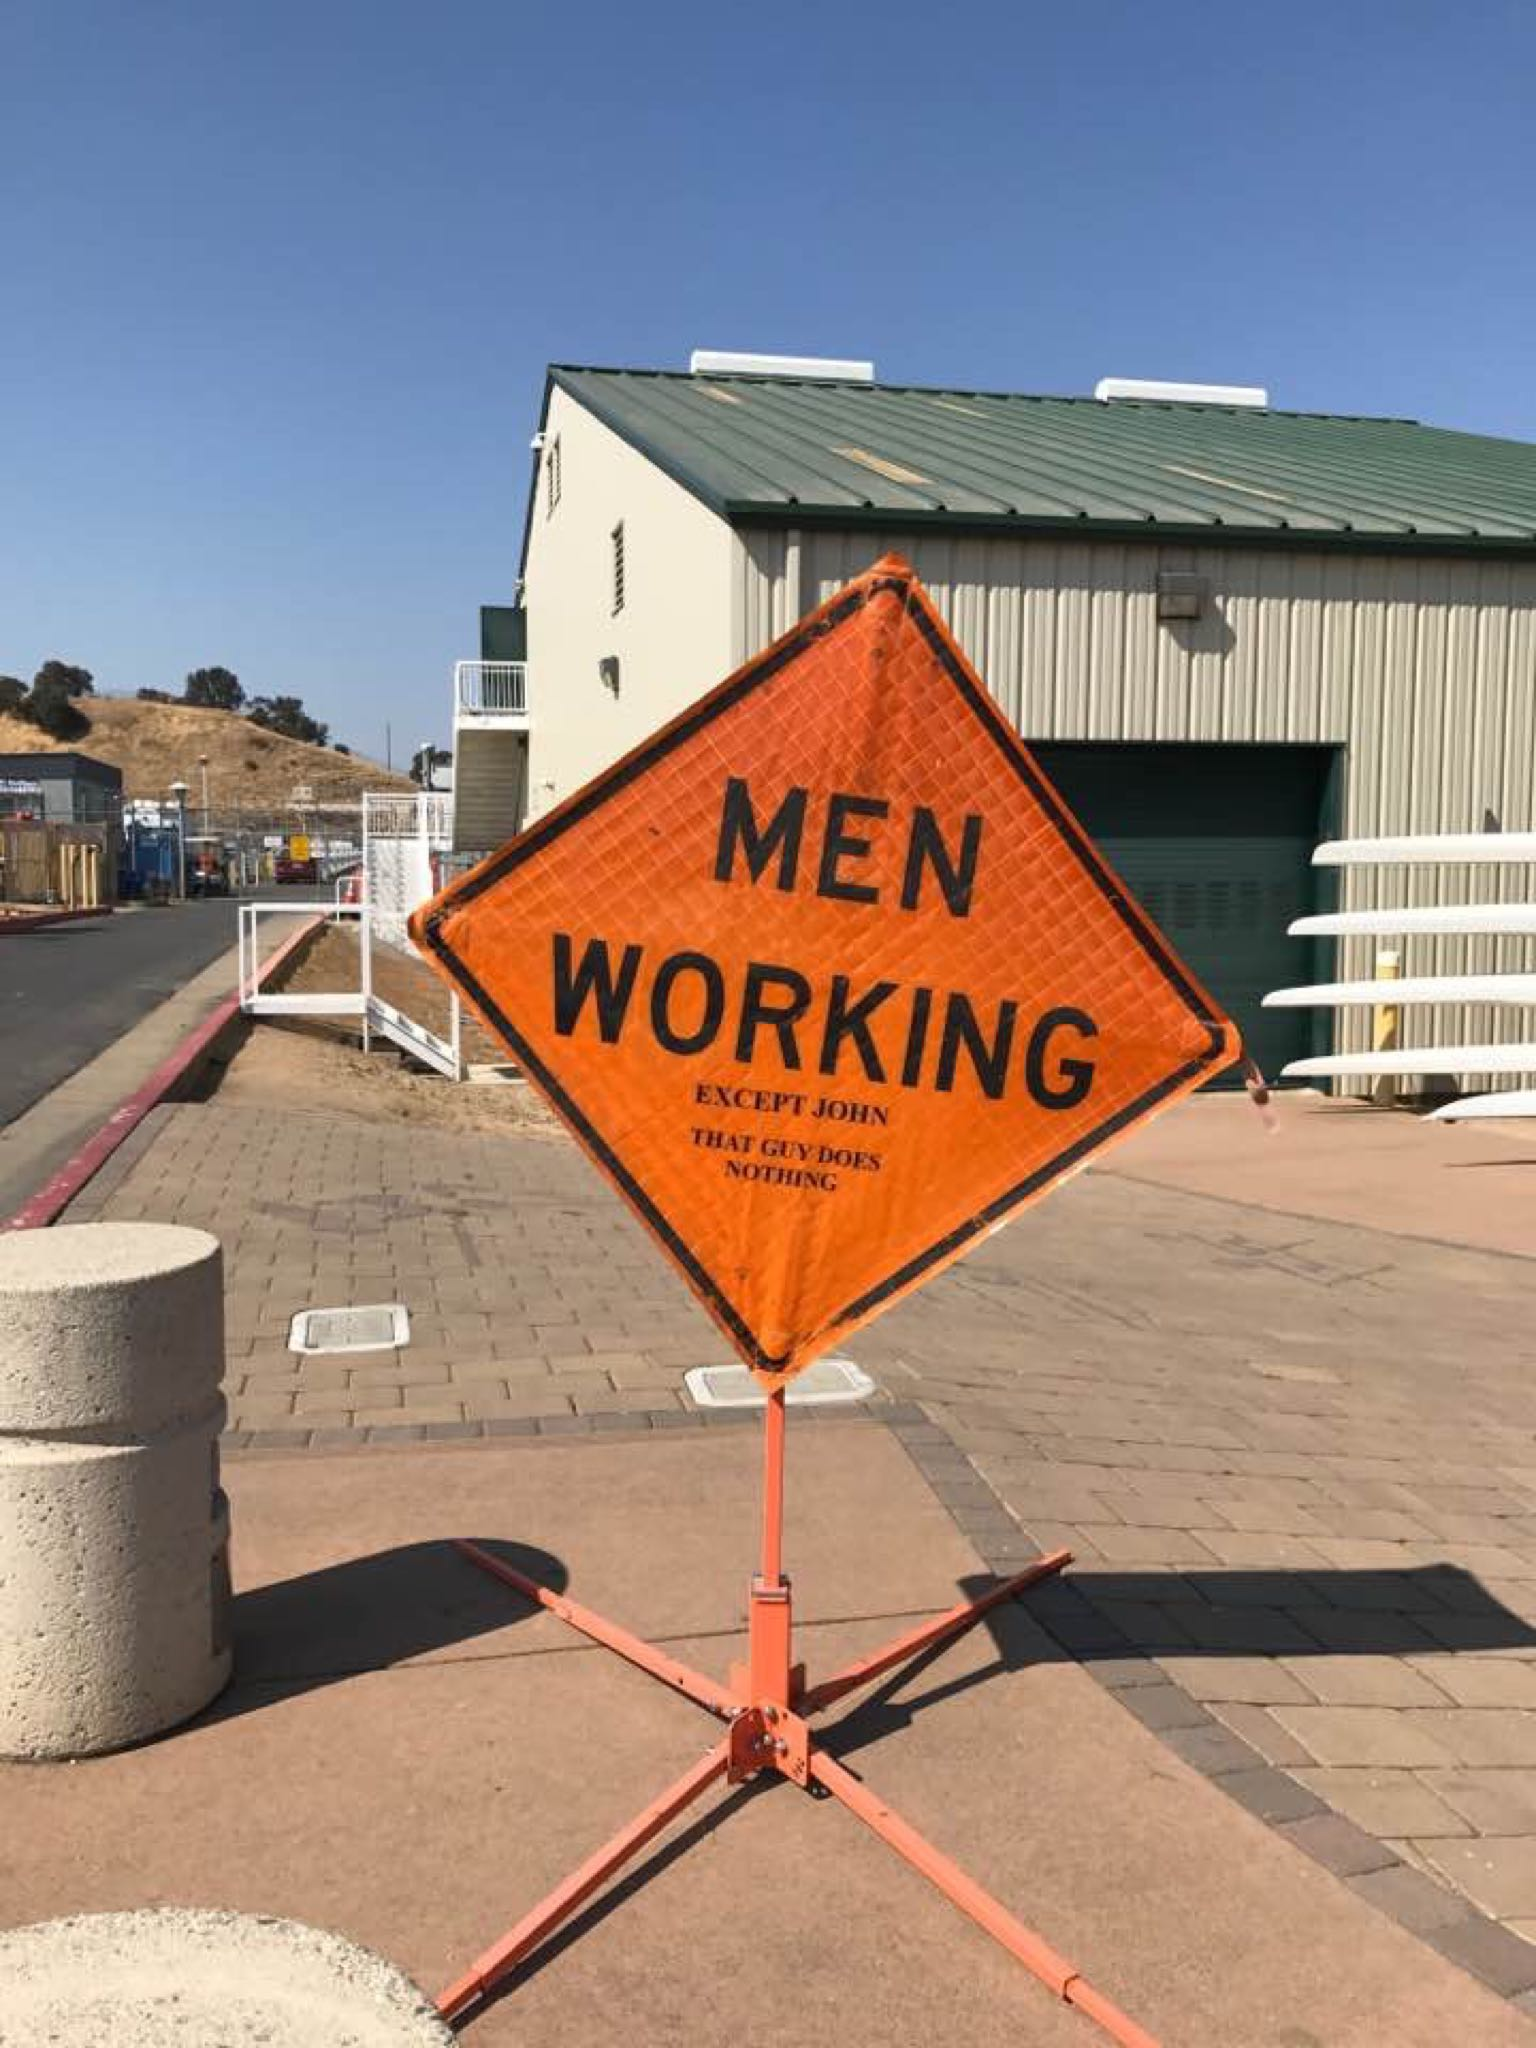 Men working, except…